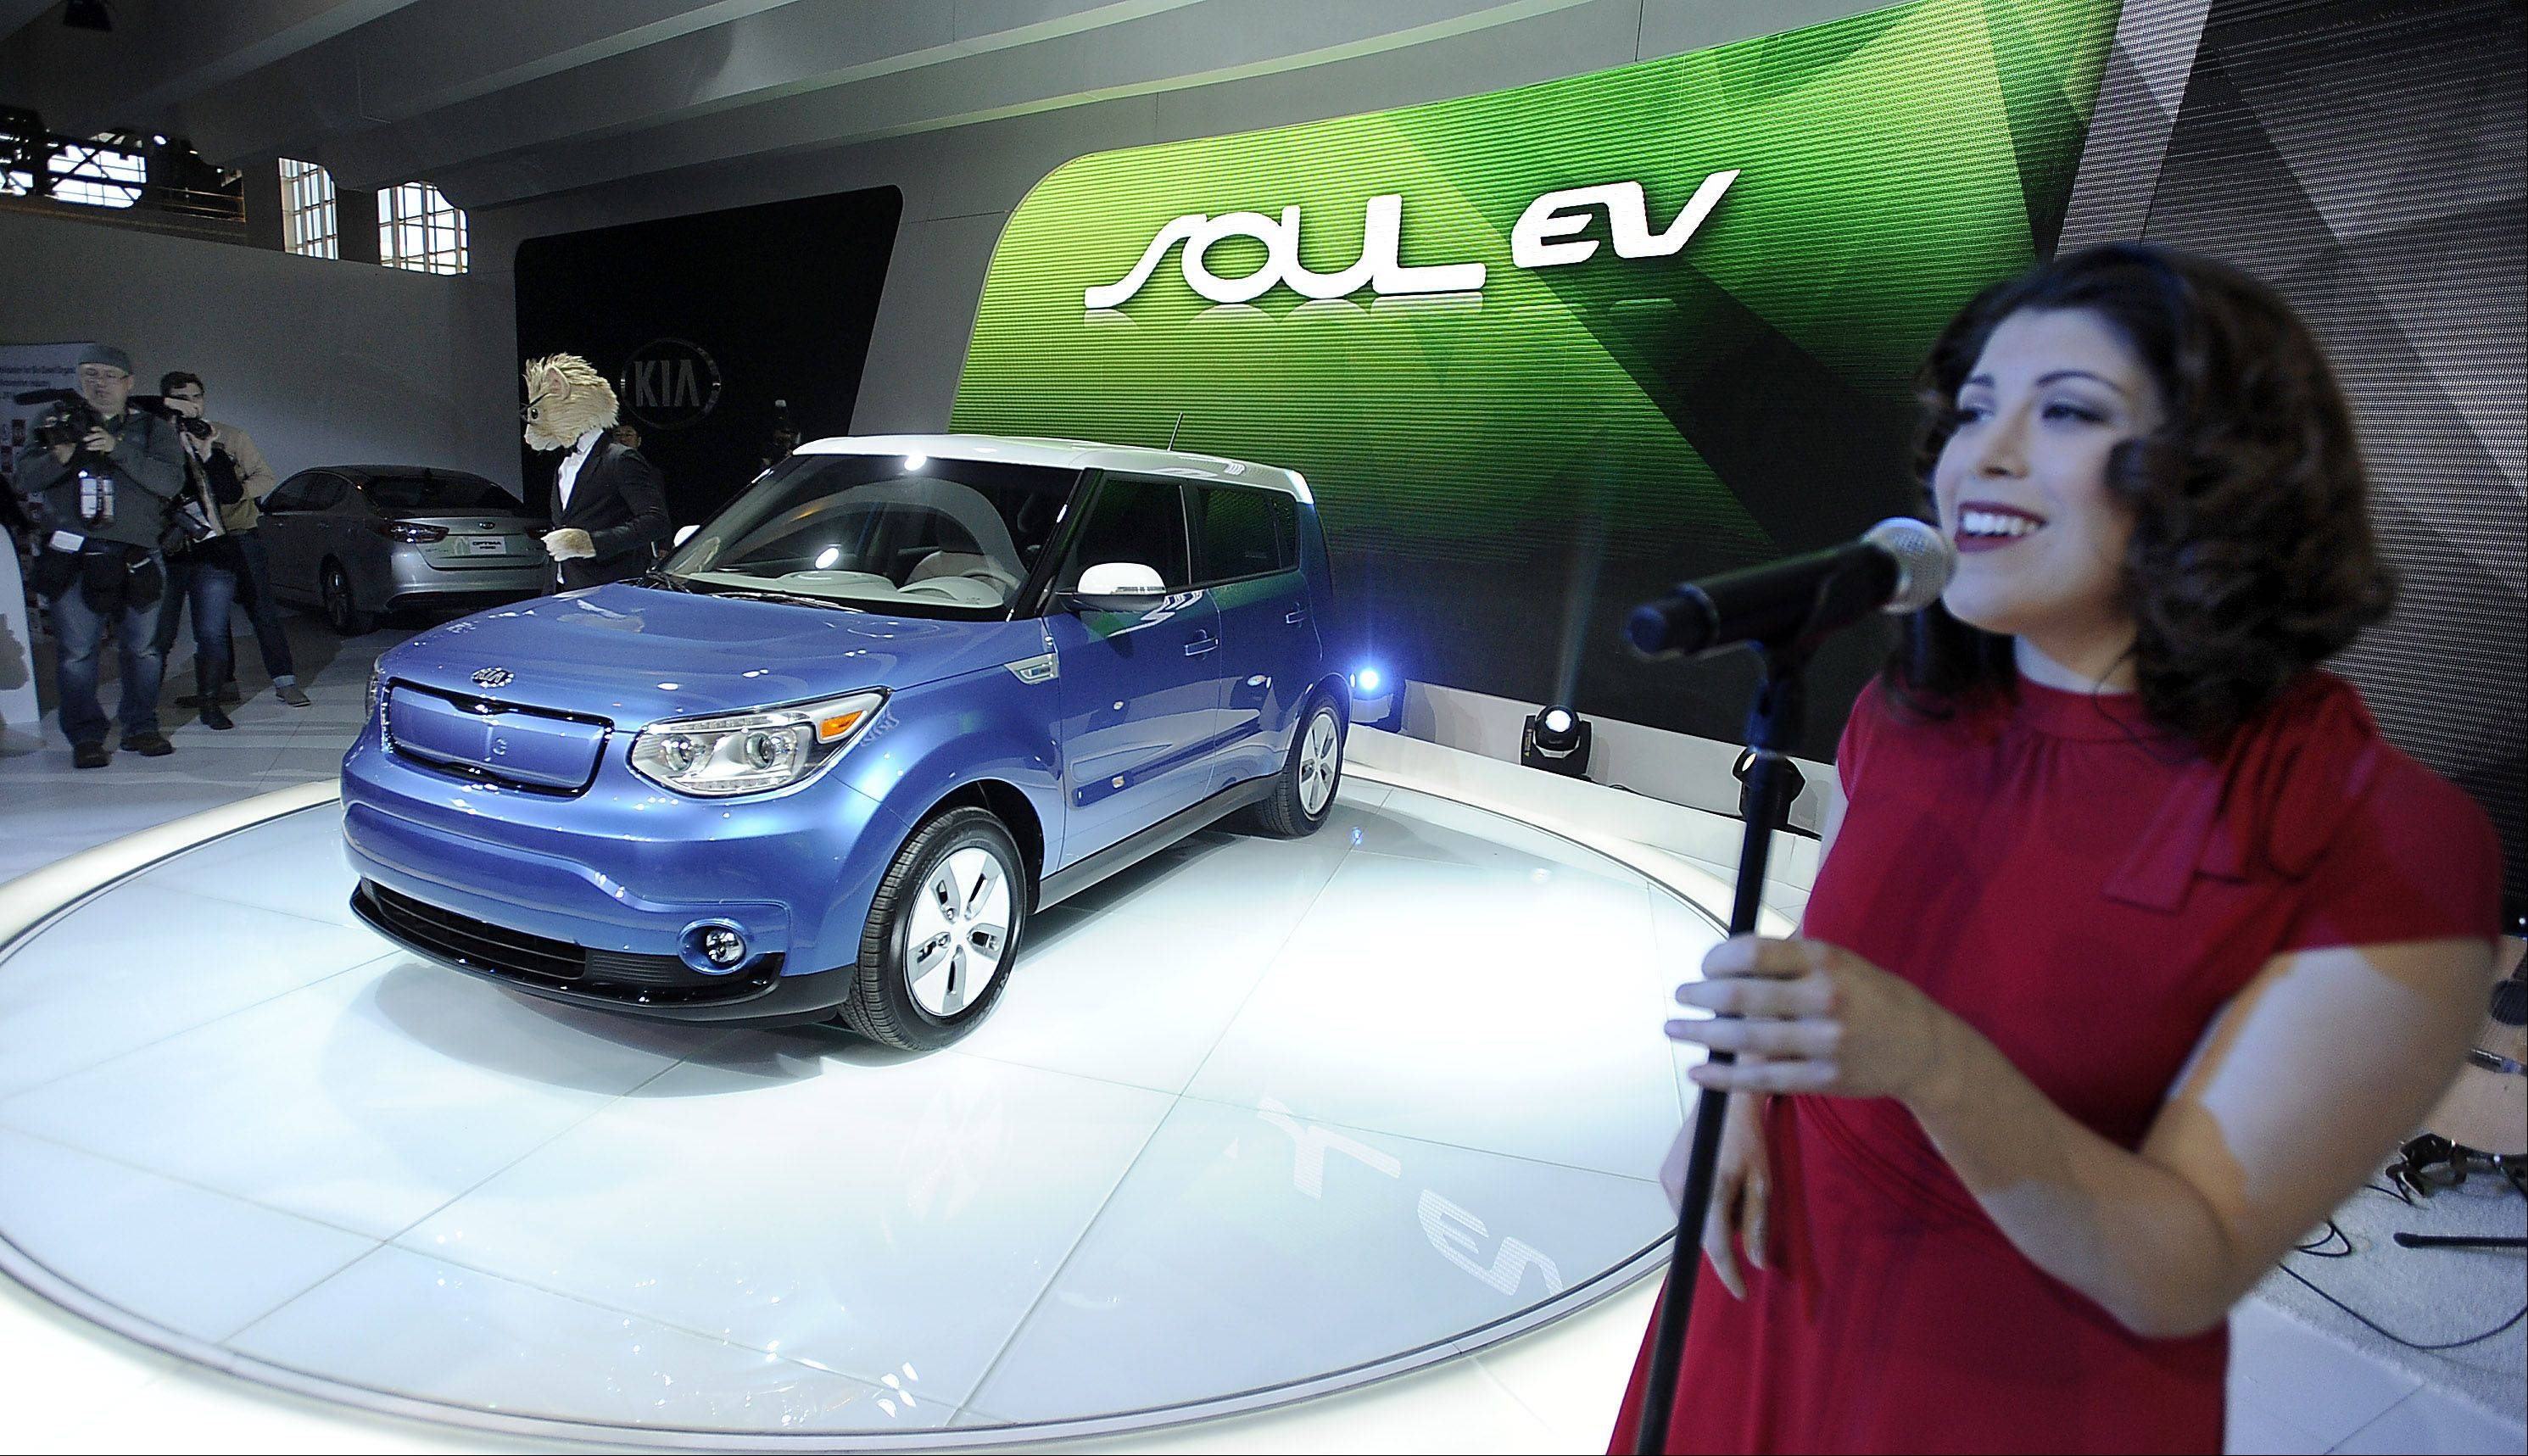 Kristina Cottone of Chicago and Kia Motors America introduces the 2015 Soul EV car.